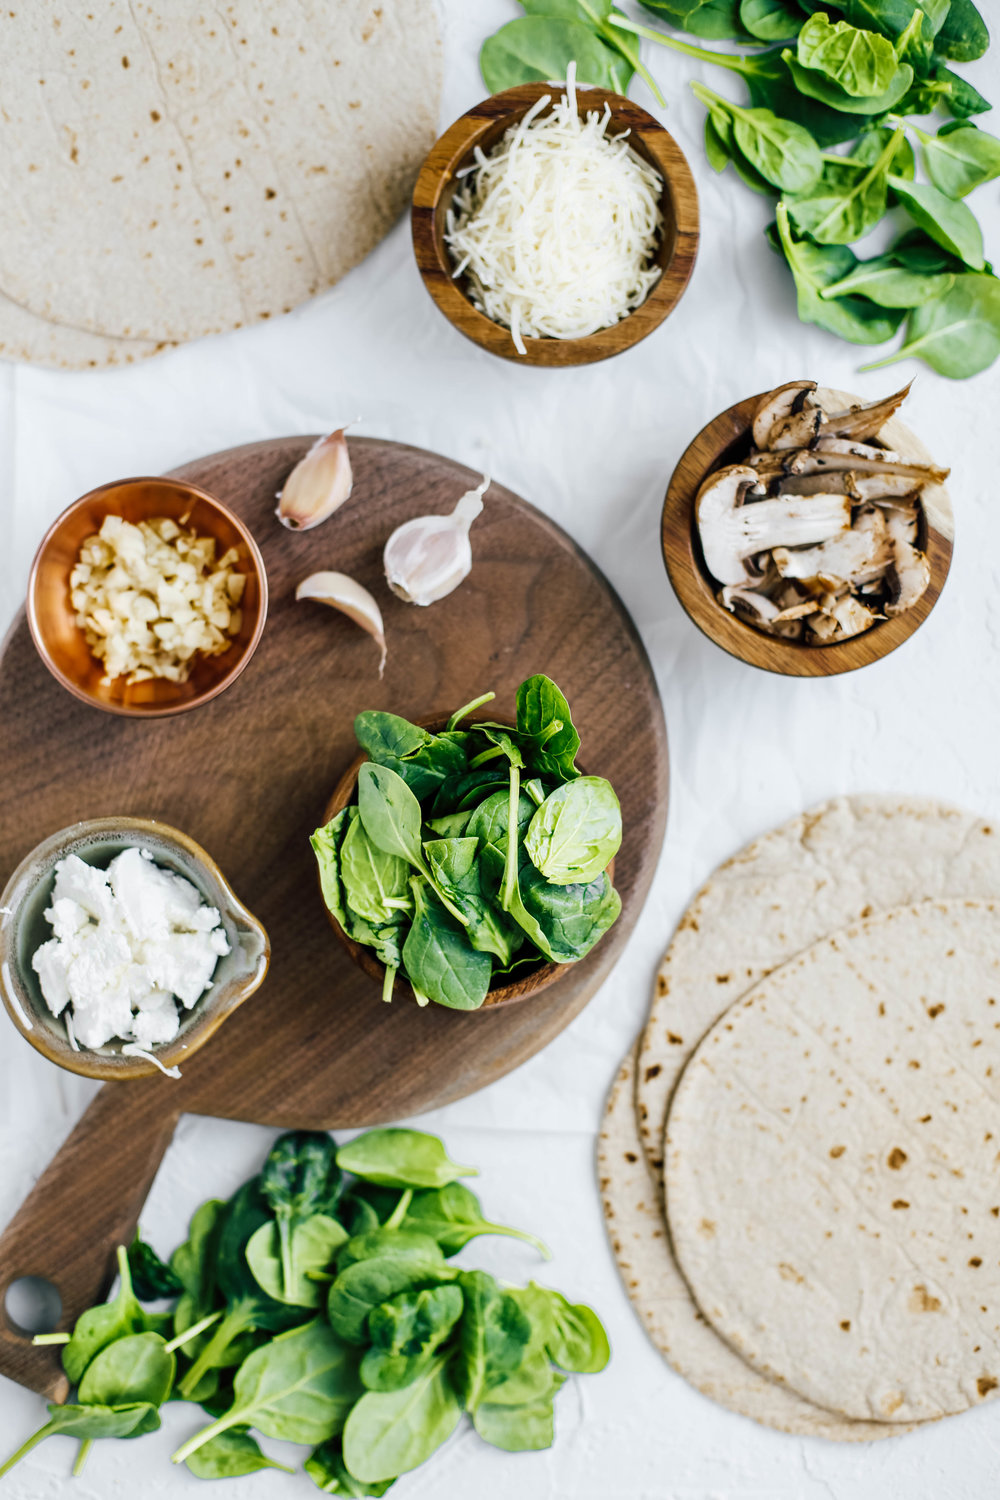 Caramelized Spinach & Mushroom Goat Cheese Quesadillas-1.jpg